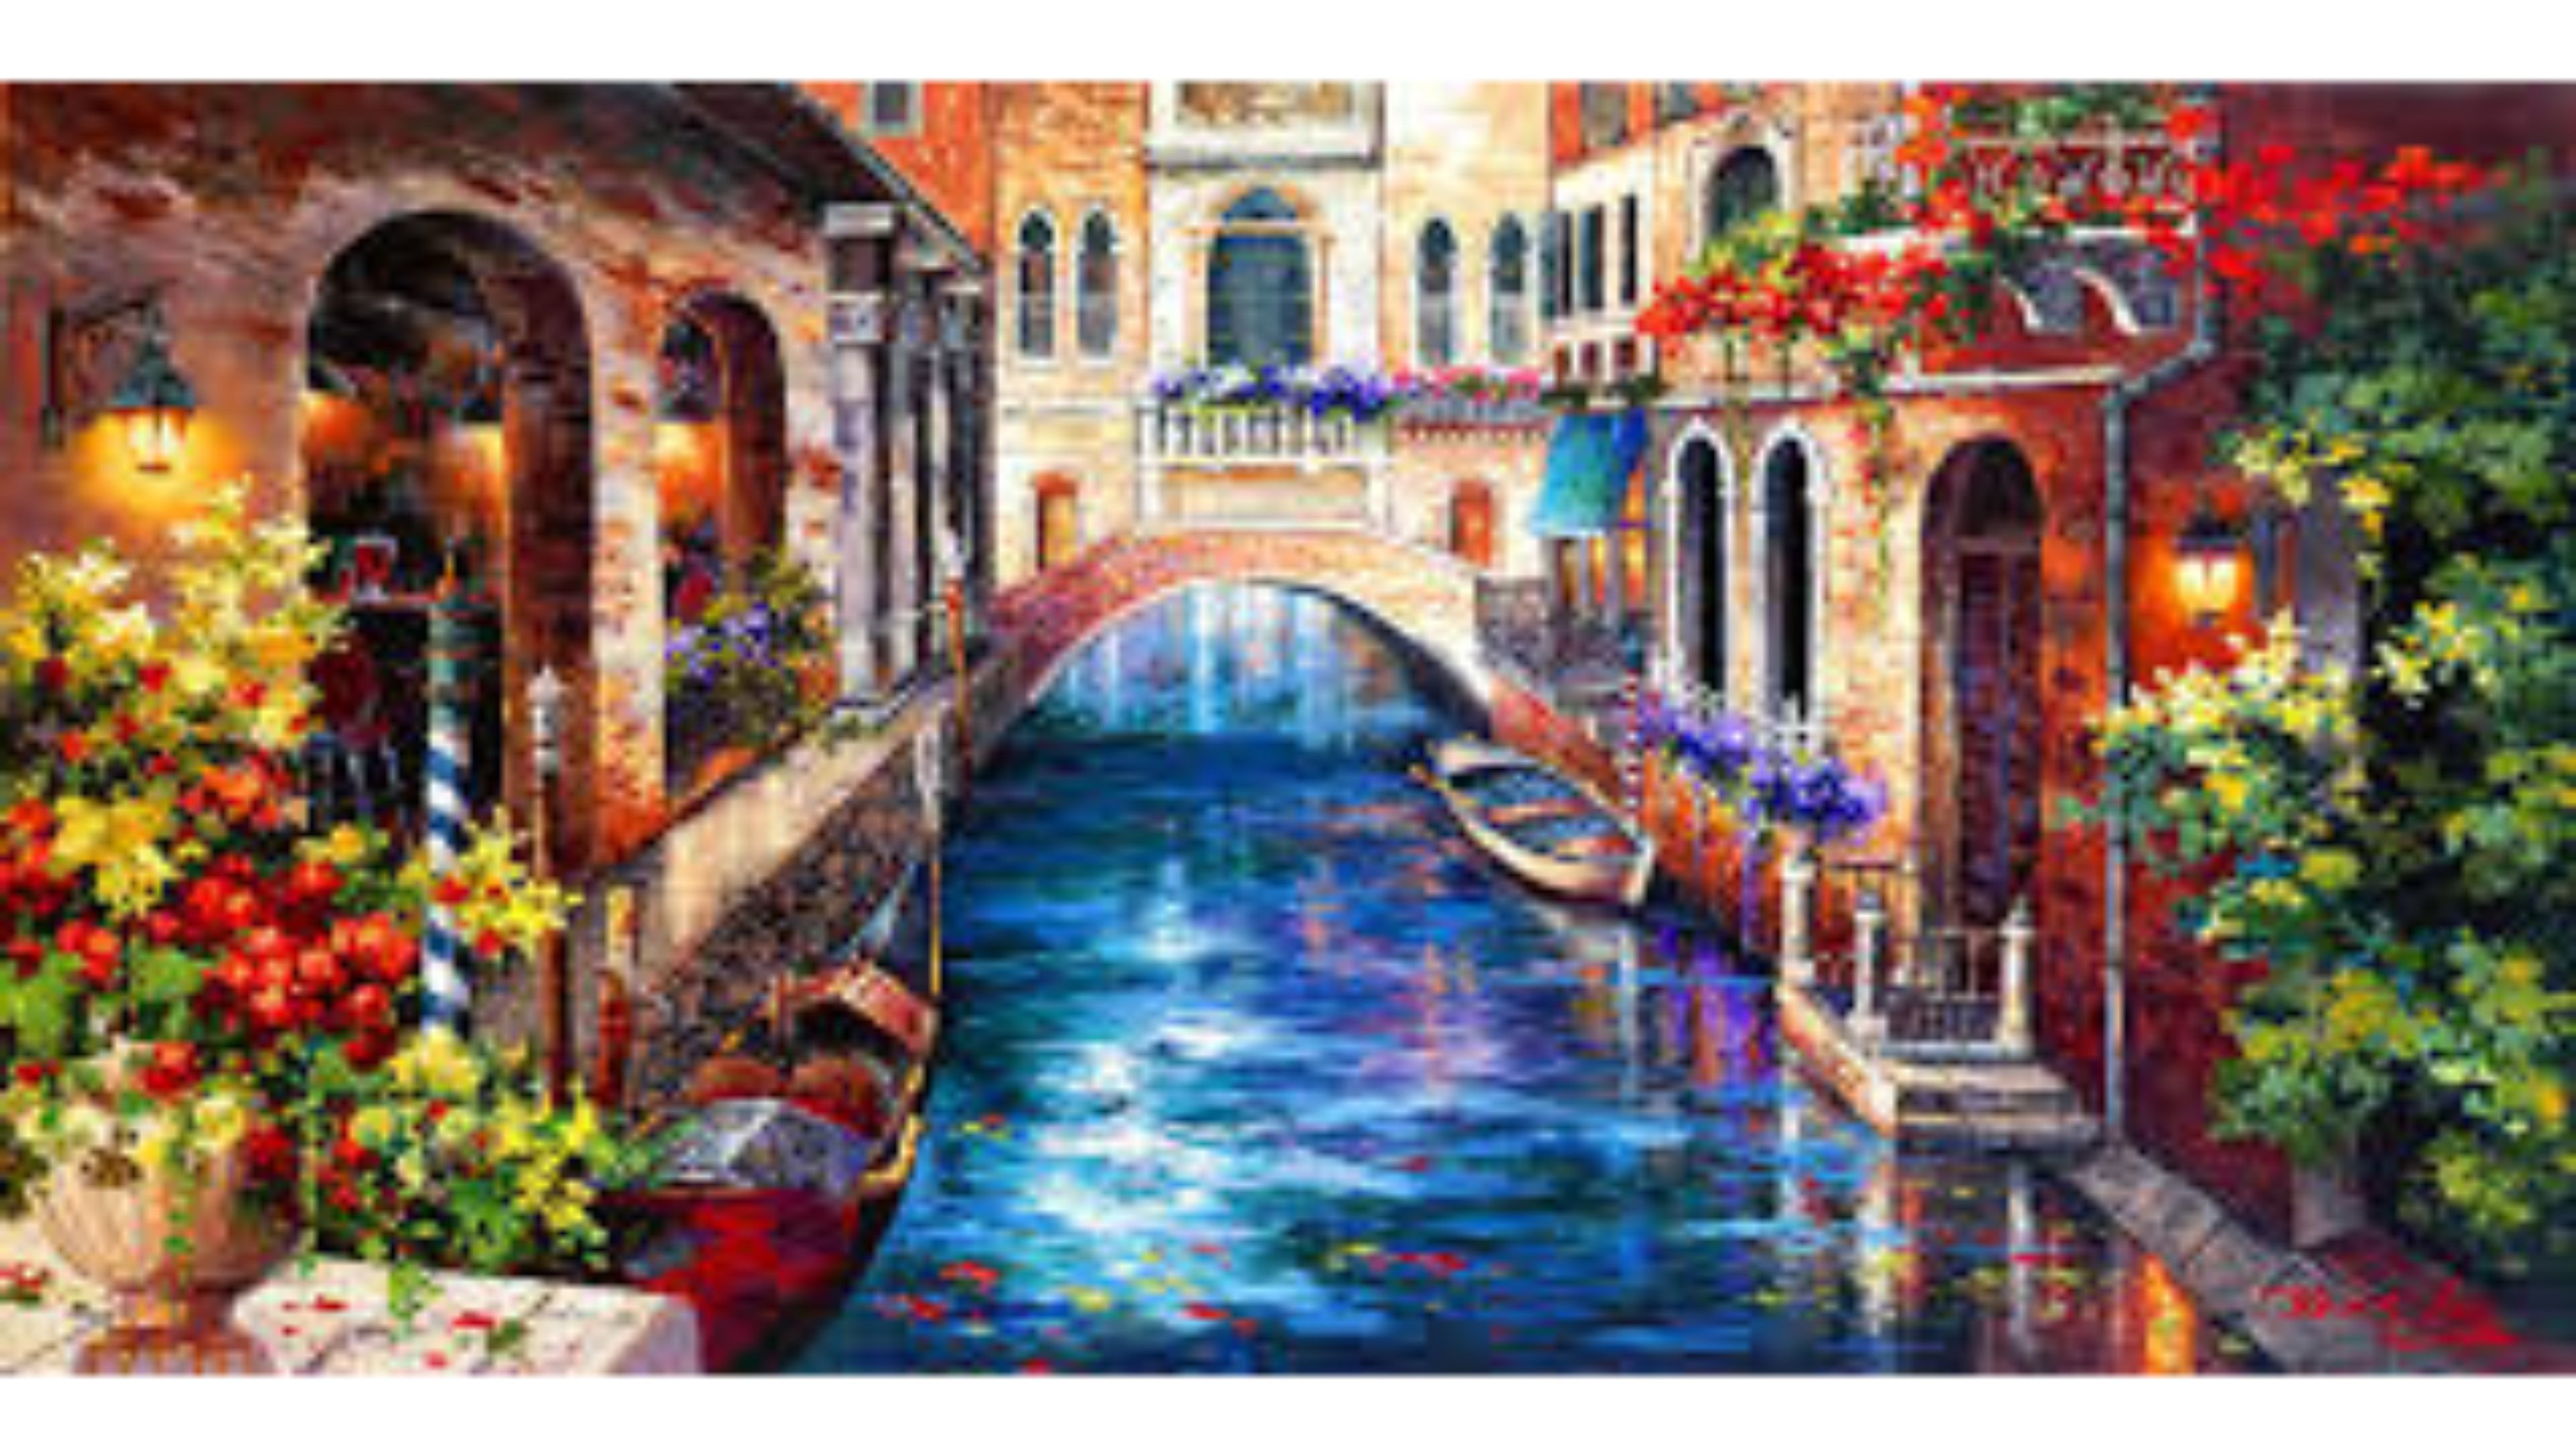 Venice Italy Wallpaper 70+ images